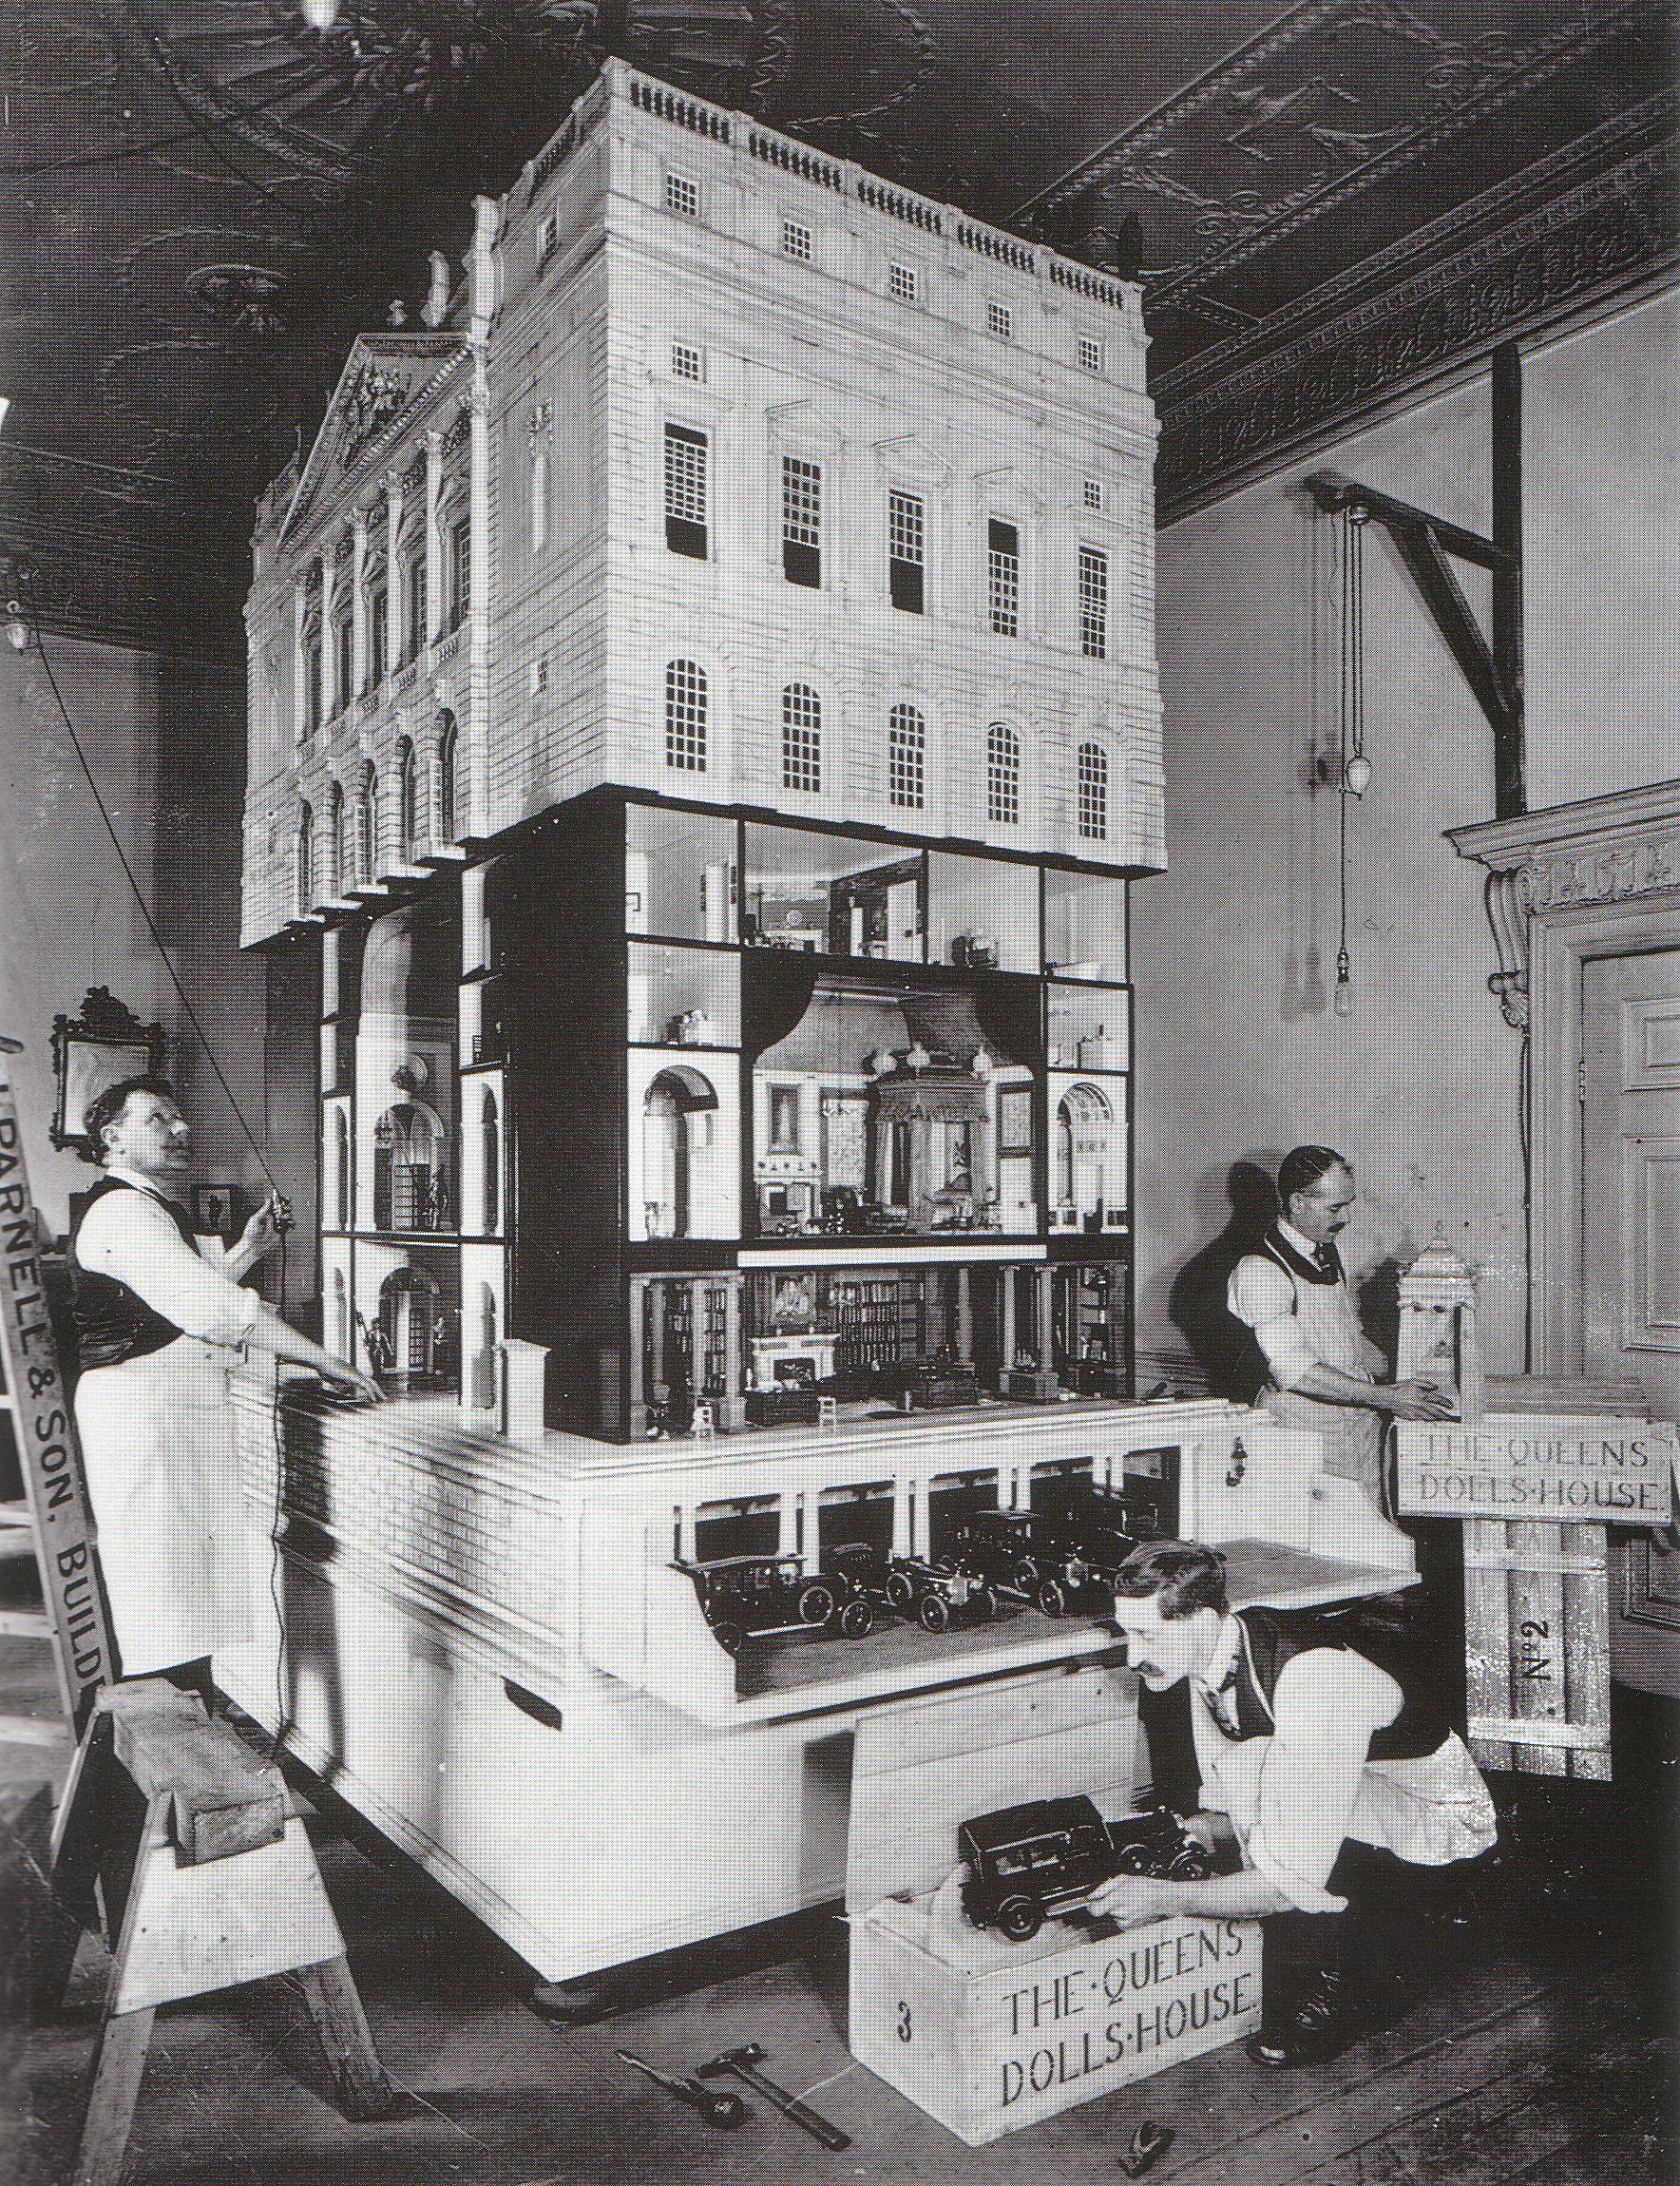 Queen Mary S Dolls House Warner Textile Archive